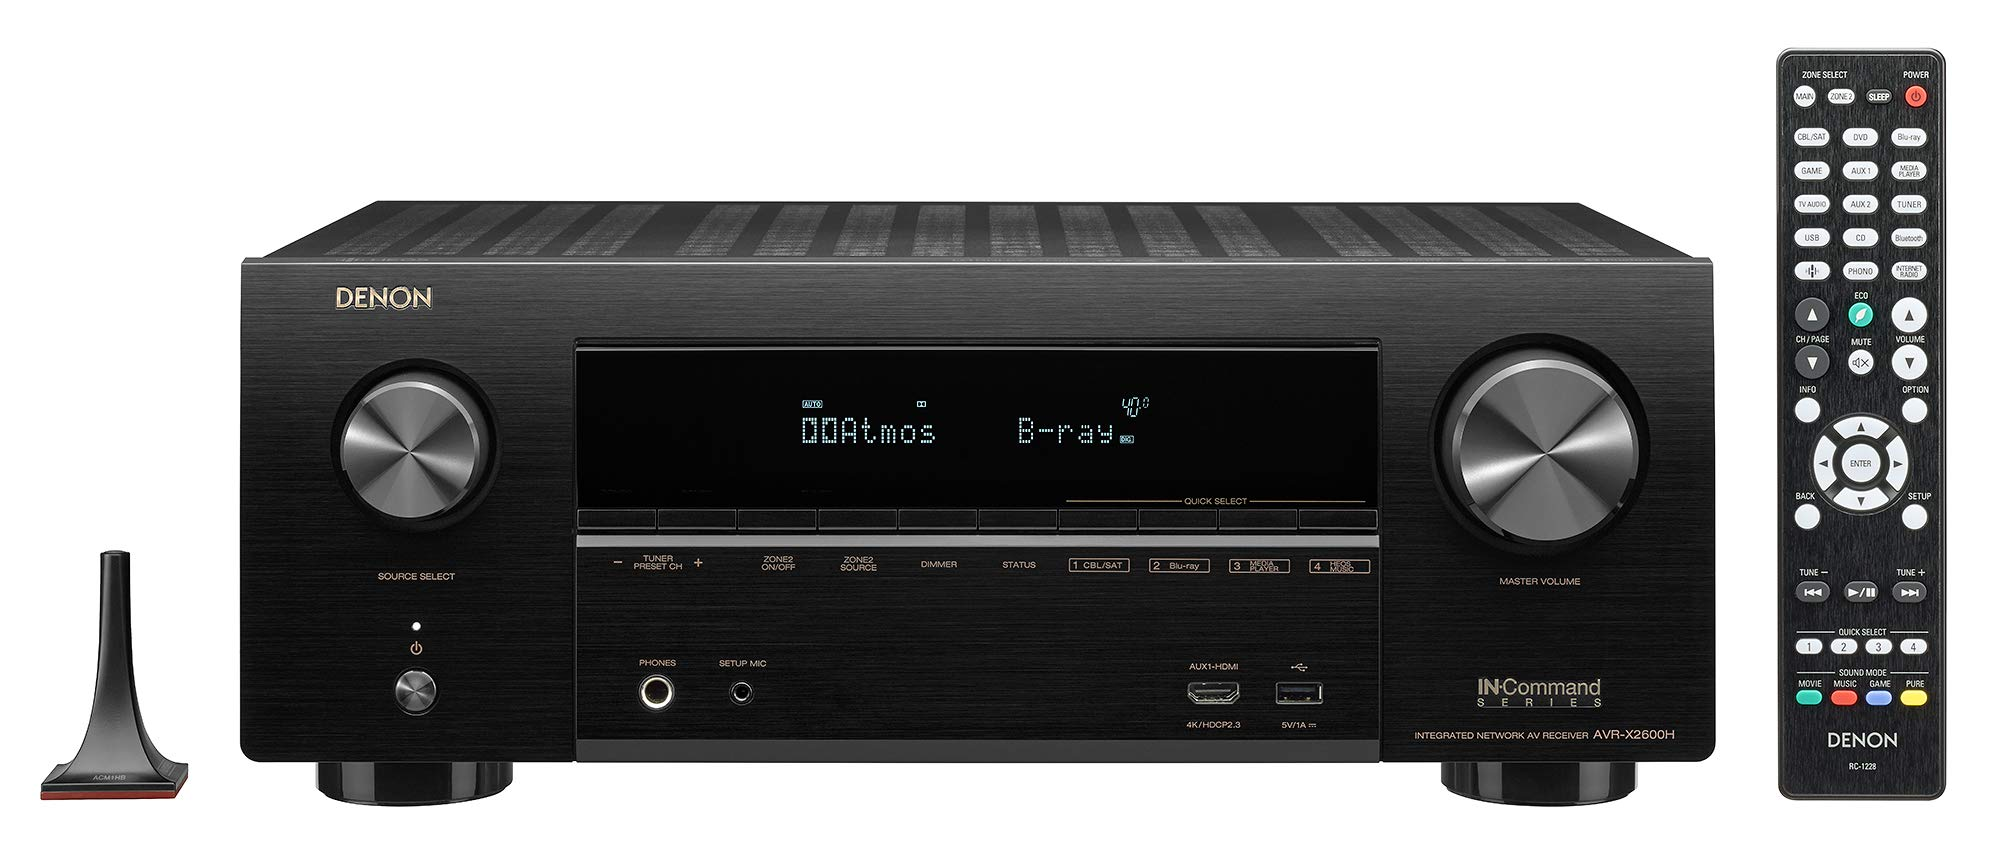 Denon AVR-X2600H 4K UHD AV Receiver | 2019 Model | 7.2 Channel, 95W Each | New Dolby Atmos Height Virtualization, Dual Subwoofer Outputs | 8 HDMI Inputs, 2 Outputs with eARC | AirPlay 2, Alexa & HEOS by Denon